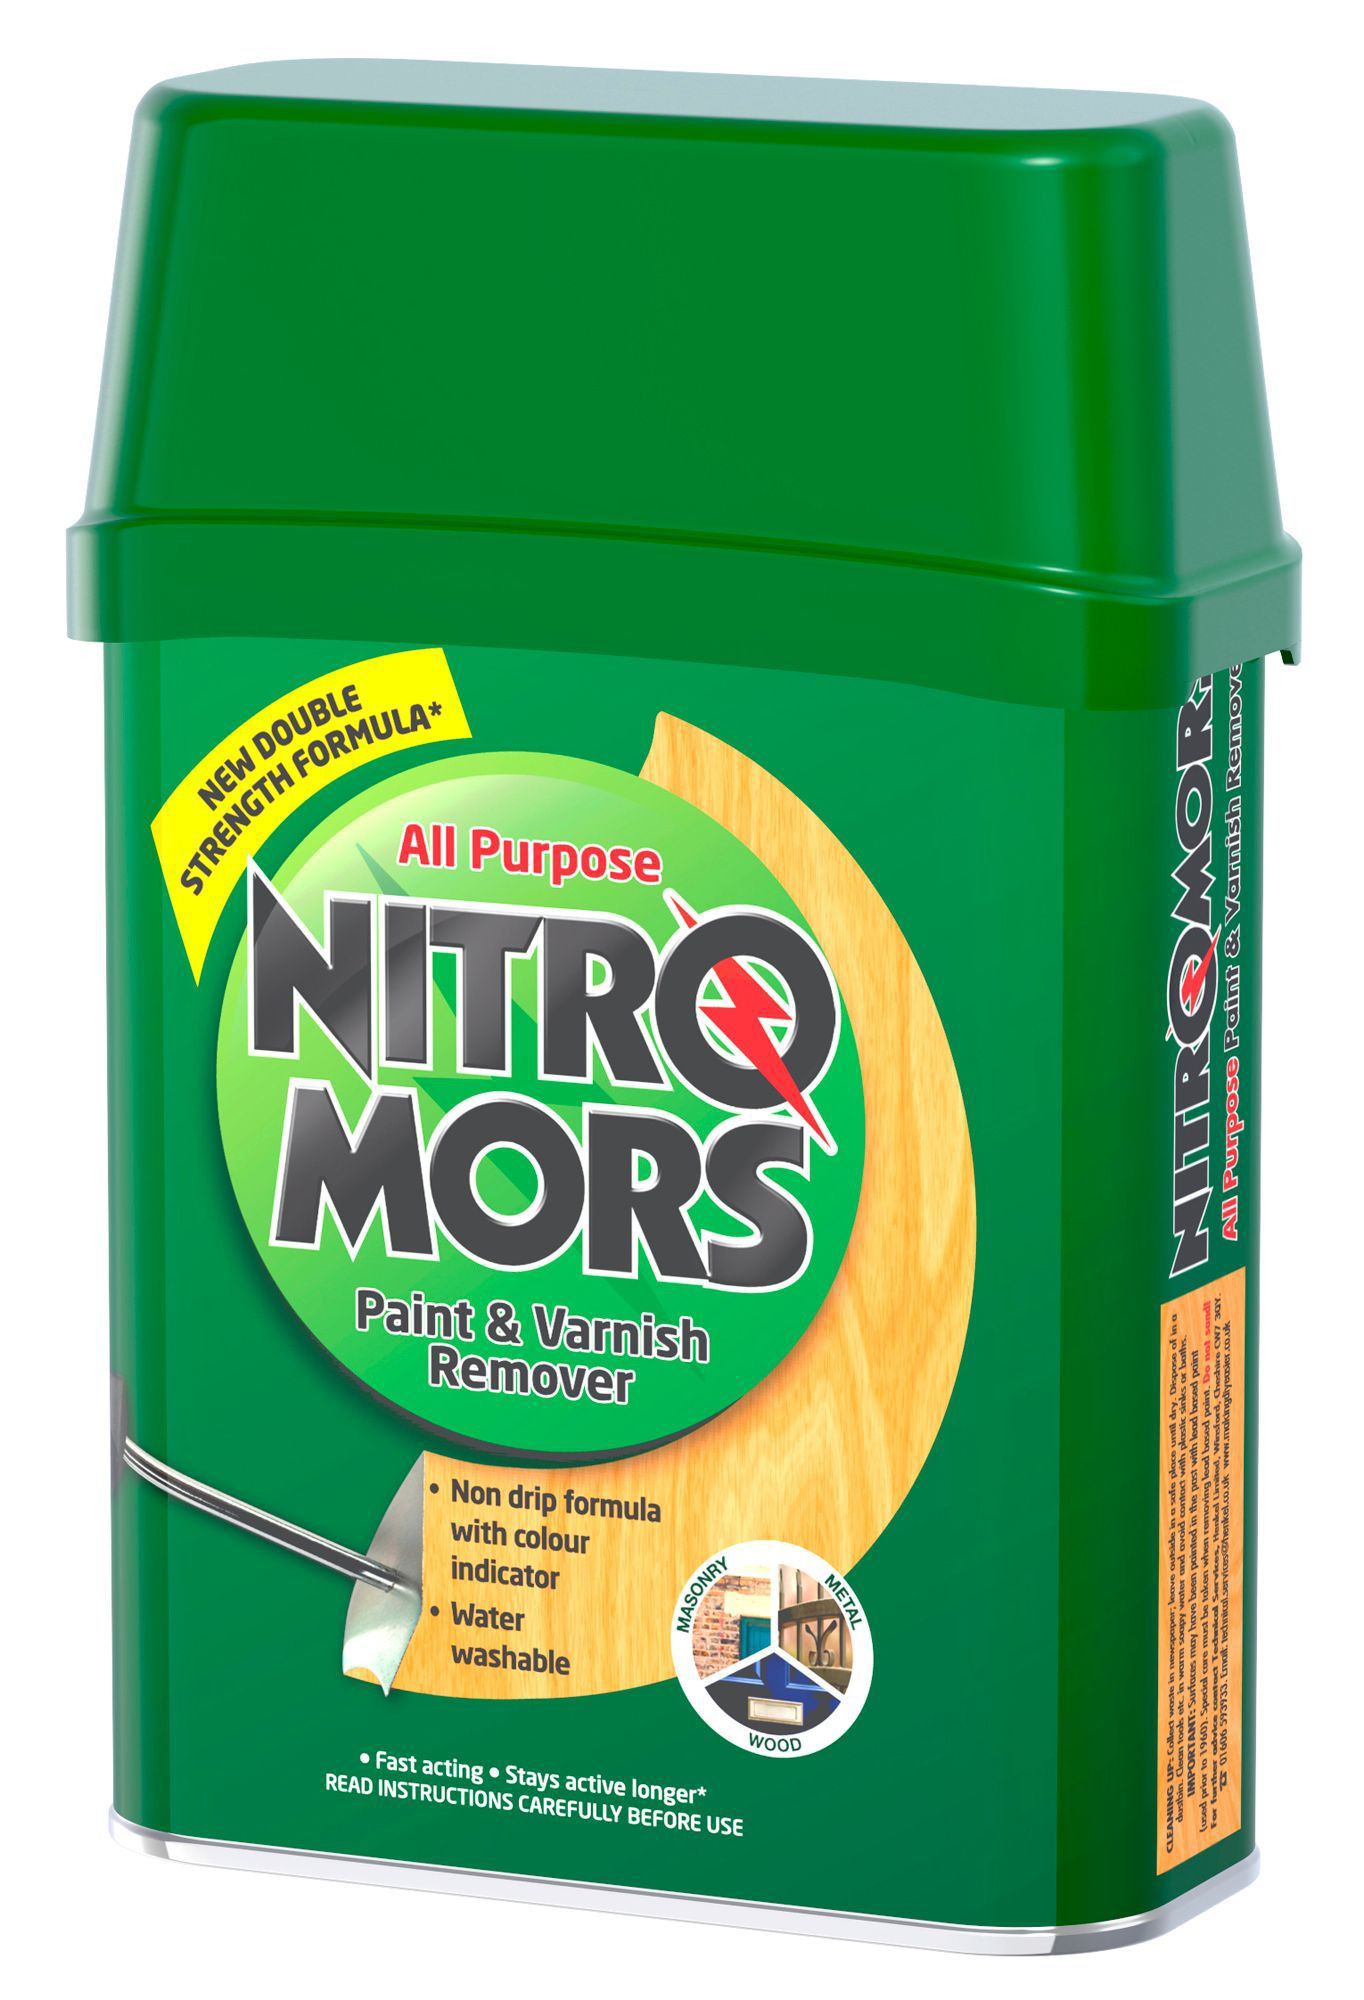 Best ideas about DIY Paint Remover . Save or Pin Nitromors All Purpose Paint & Varnish Remover 375ml Now.